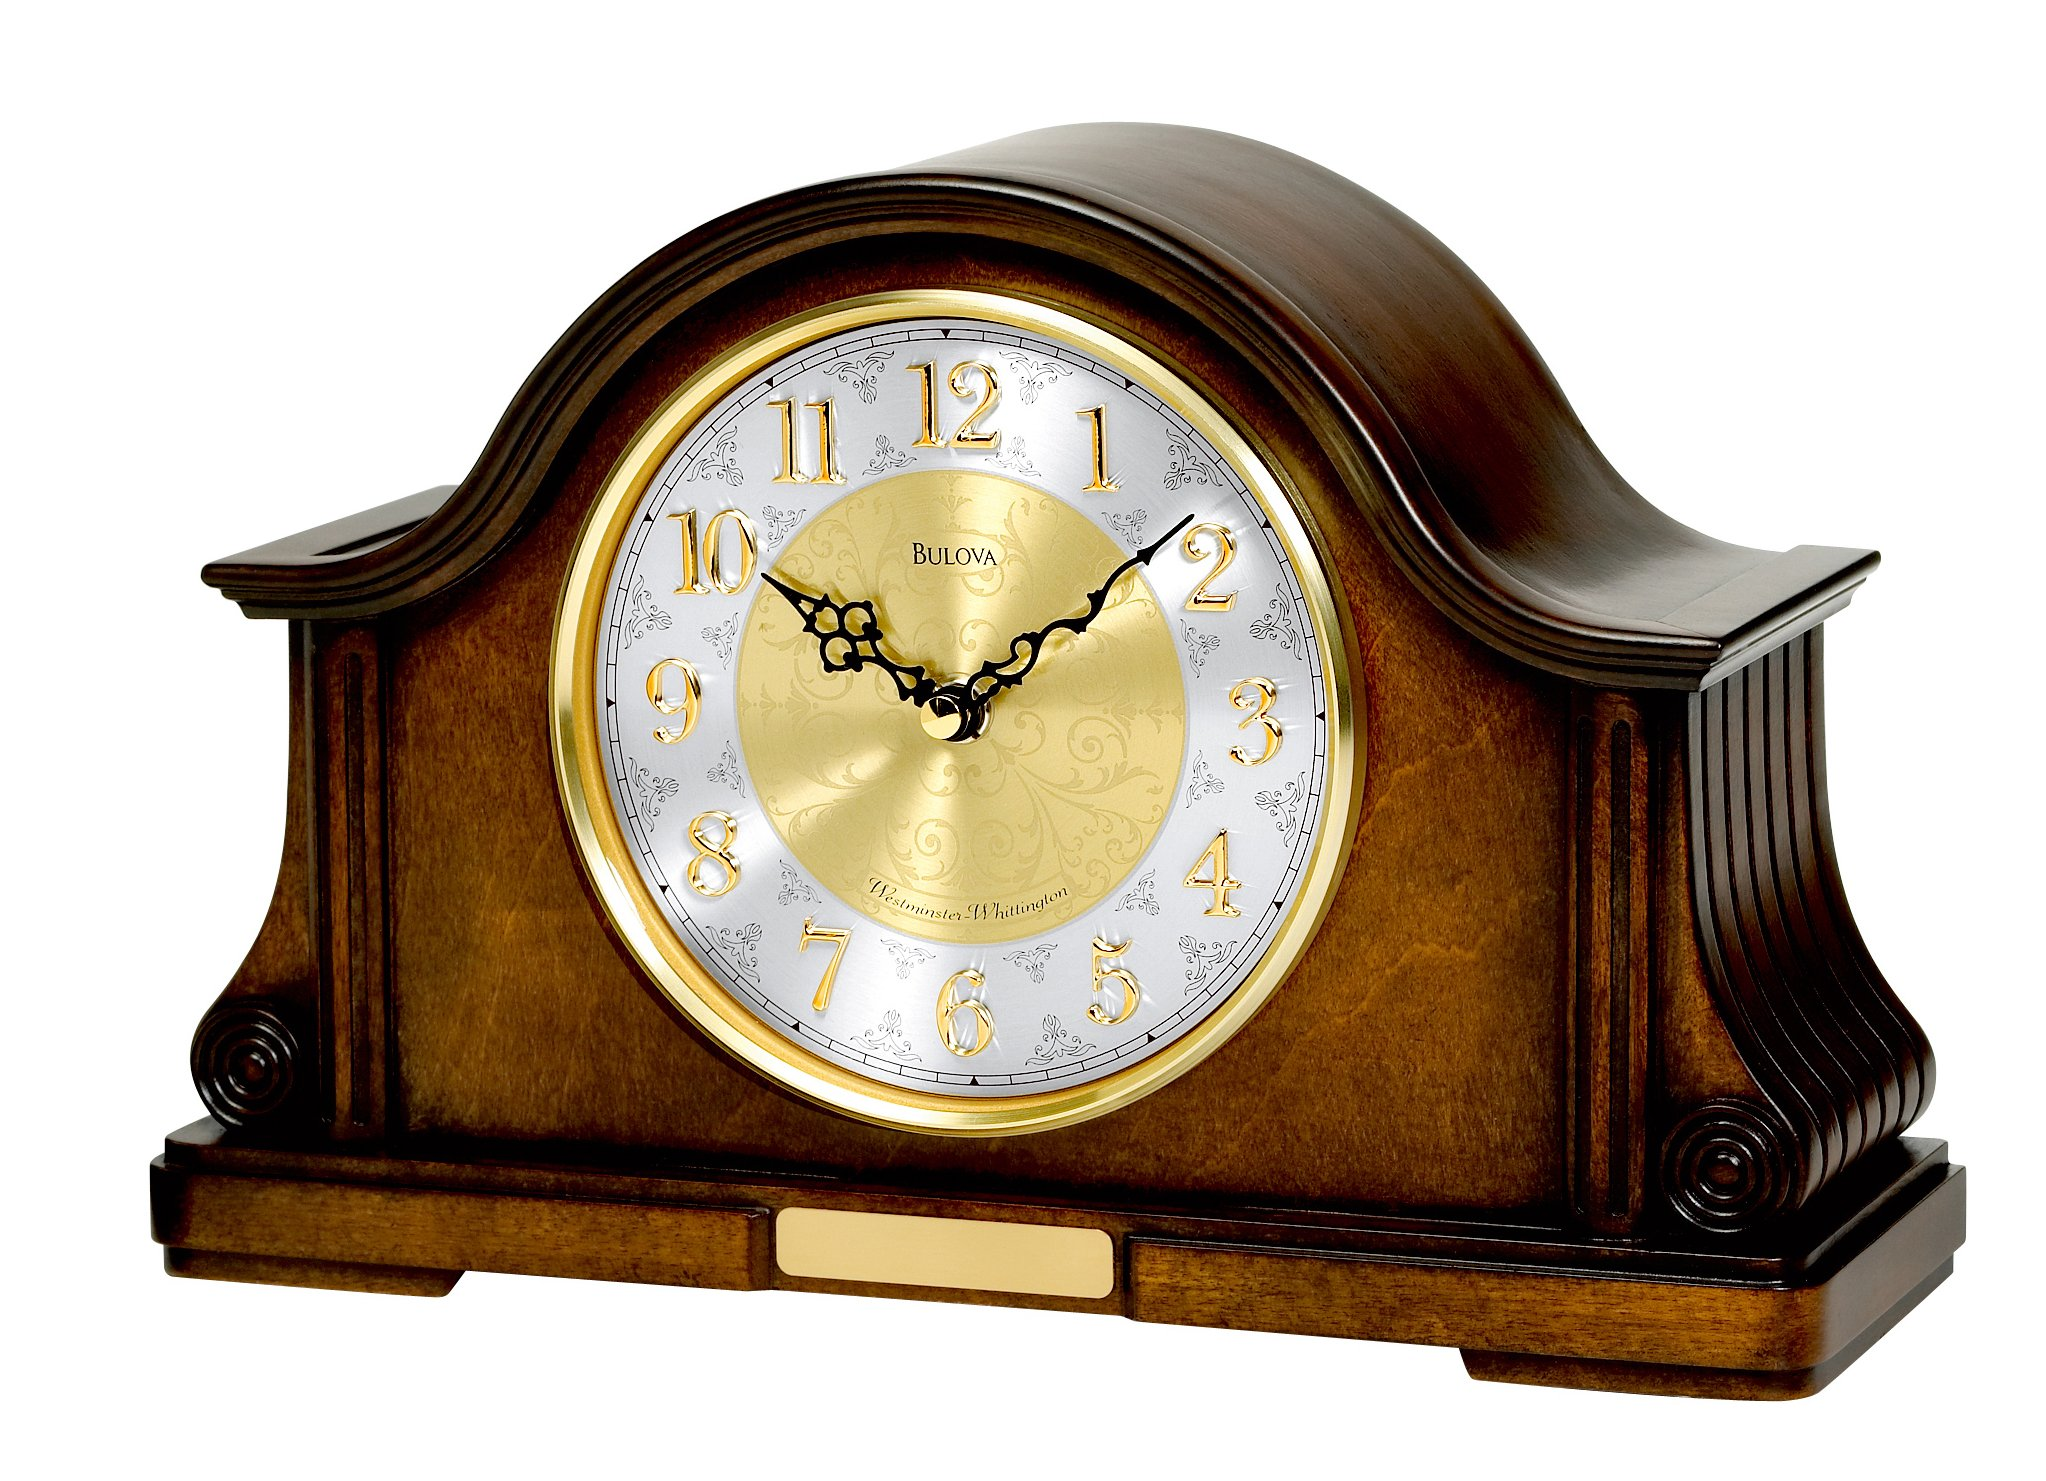 Bulova B1975 Chadbourne Old World Clock, Walnut Finish by Bulova